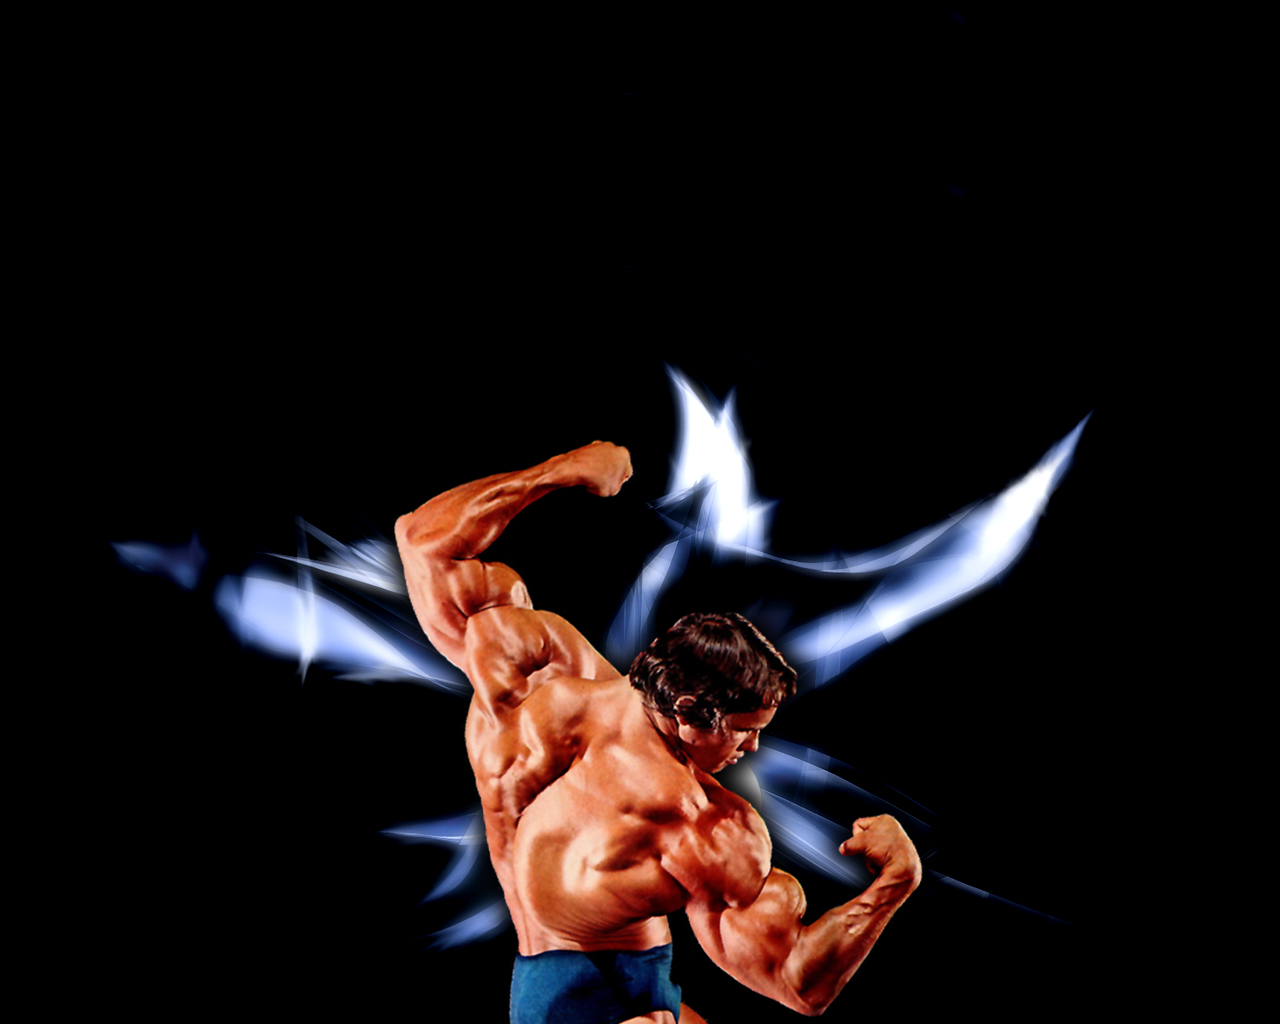 High Resolution Wallpapers Arnold Schwarzenegger Wallpapers